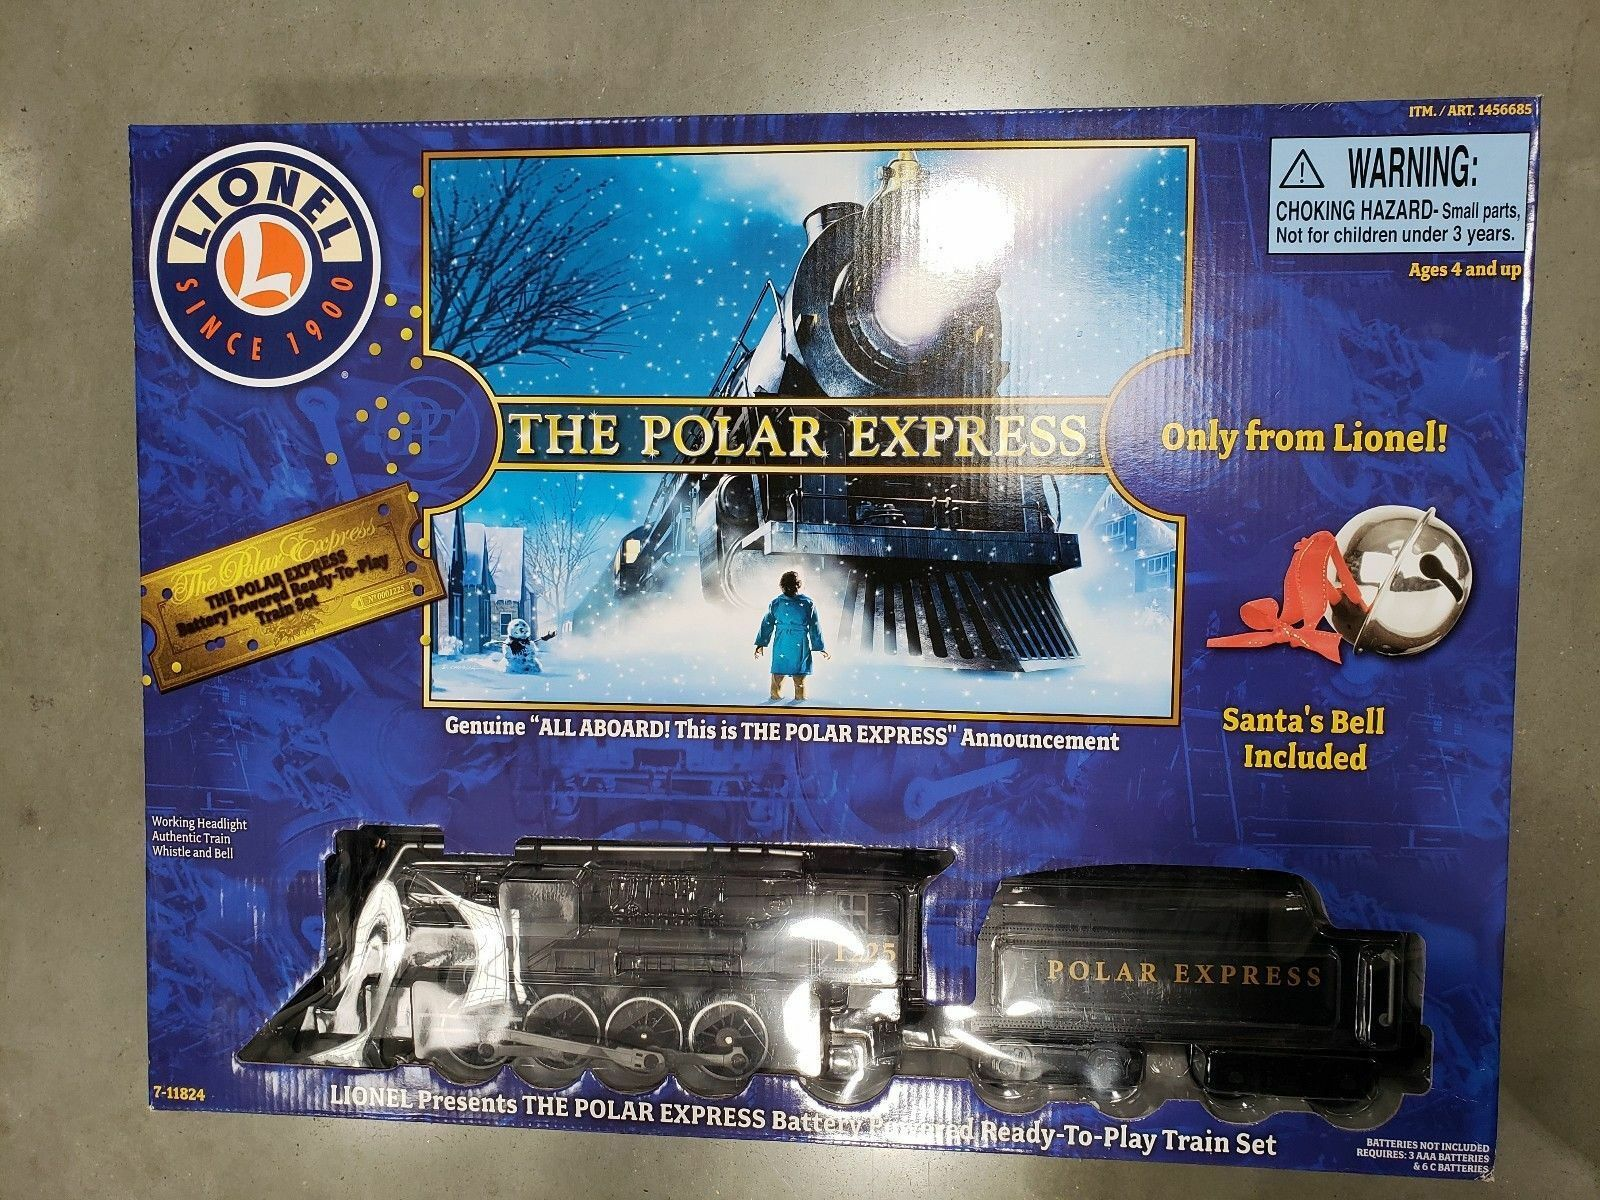 NEW 2018 LIONEL THE POLAR EXPRESS TRAIN SET IN BOX  7-11824 GENUINE AUTHENTIC